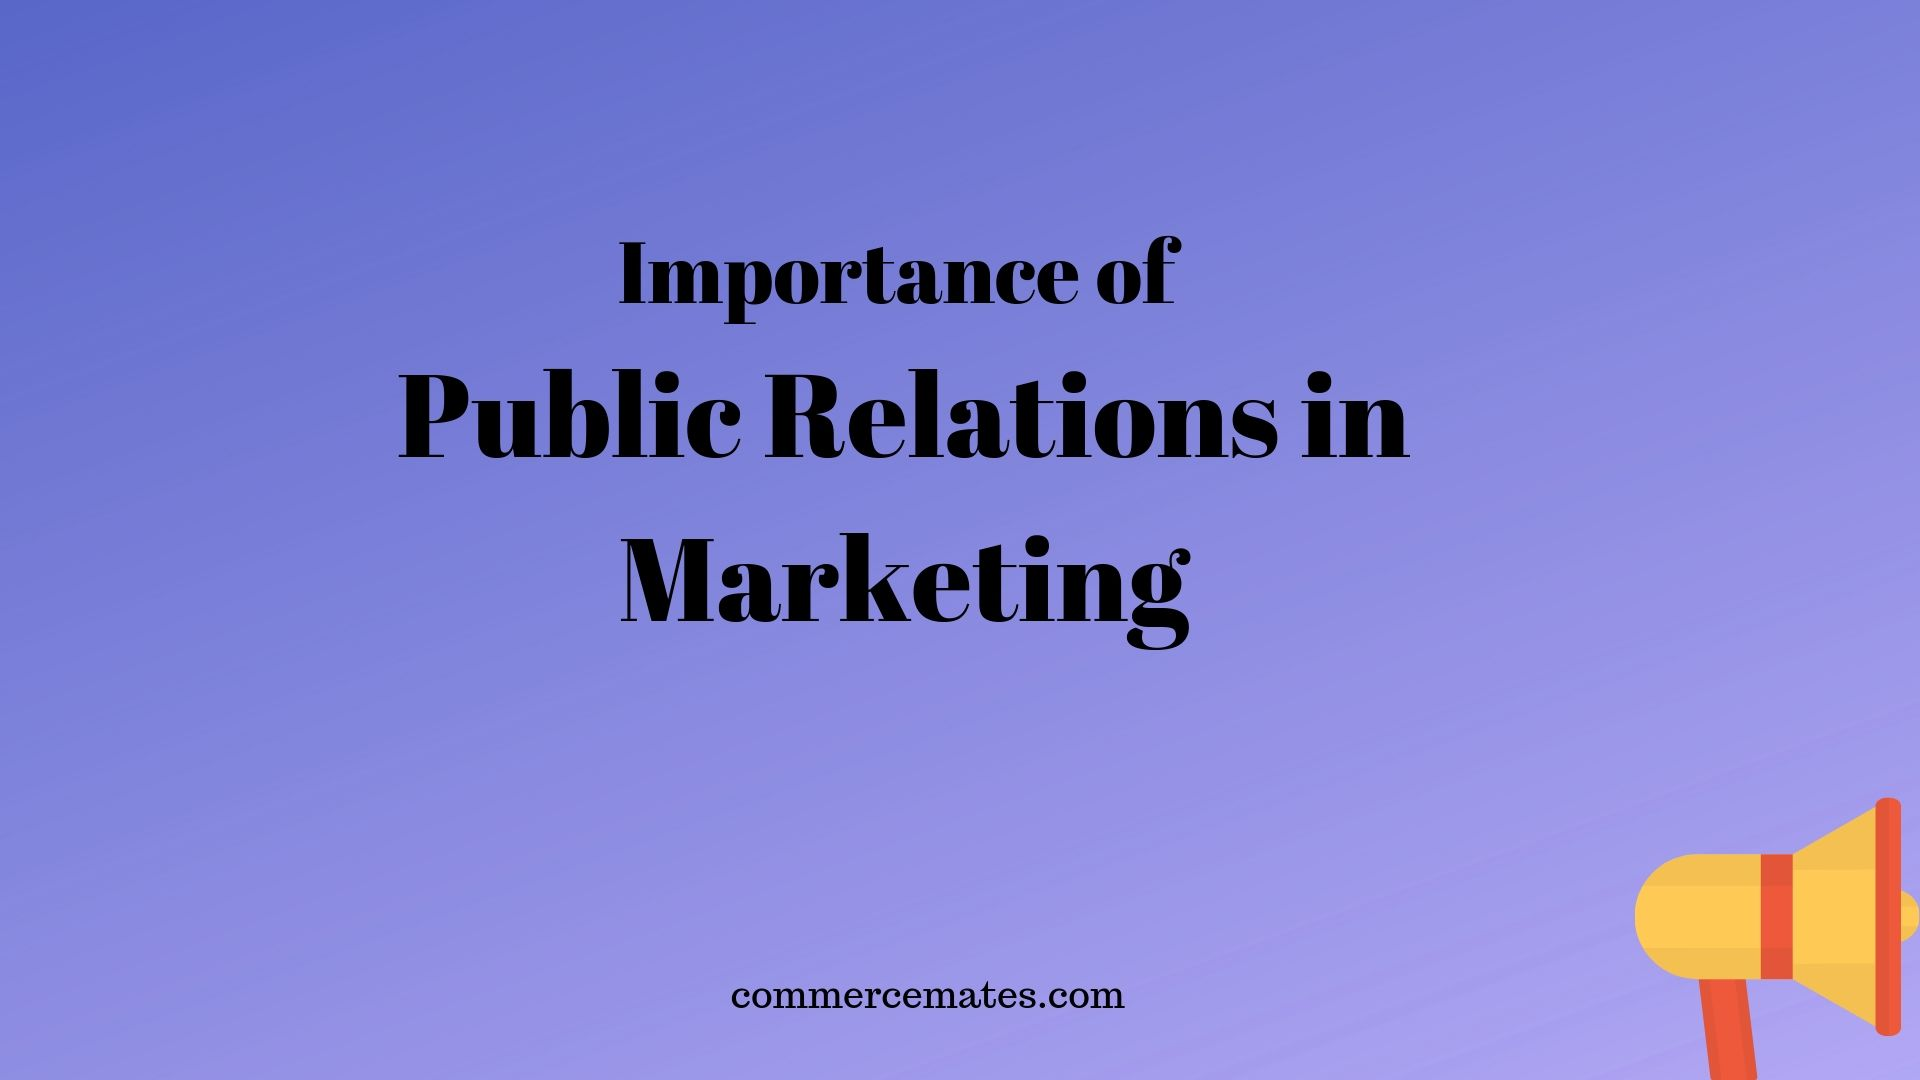 7 Importance of Public Relations in Marketing